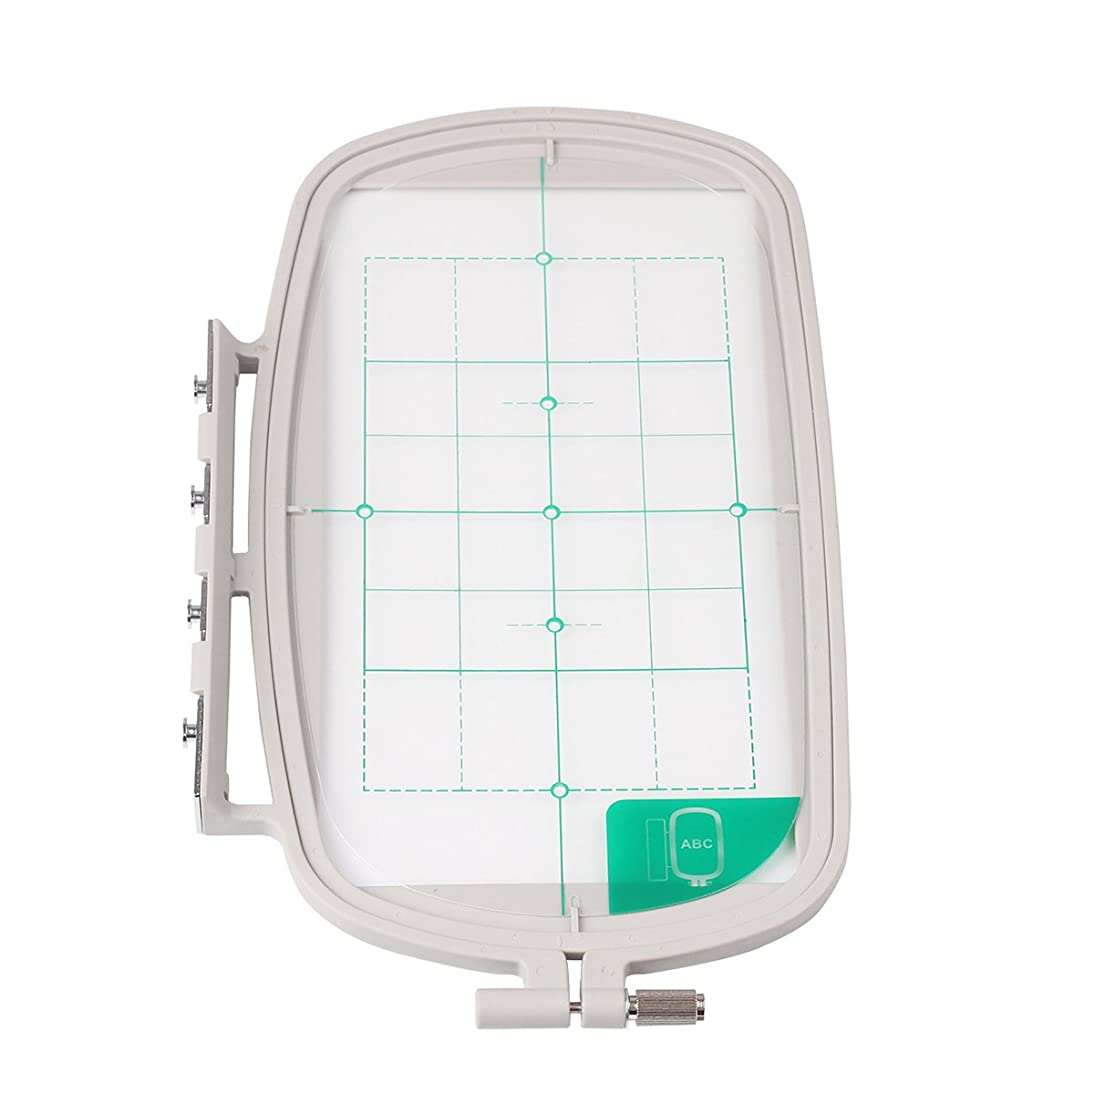 SewTech Large Embroidery Hoop for Select Brother Machines - Replaces Brother SA434 Large Hoop